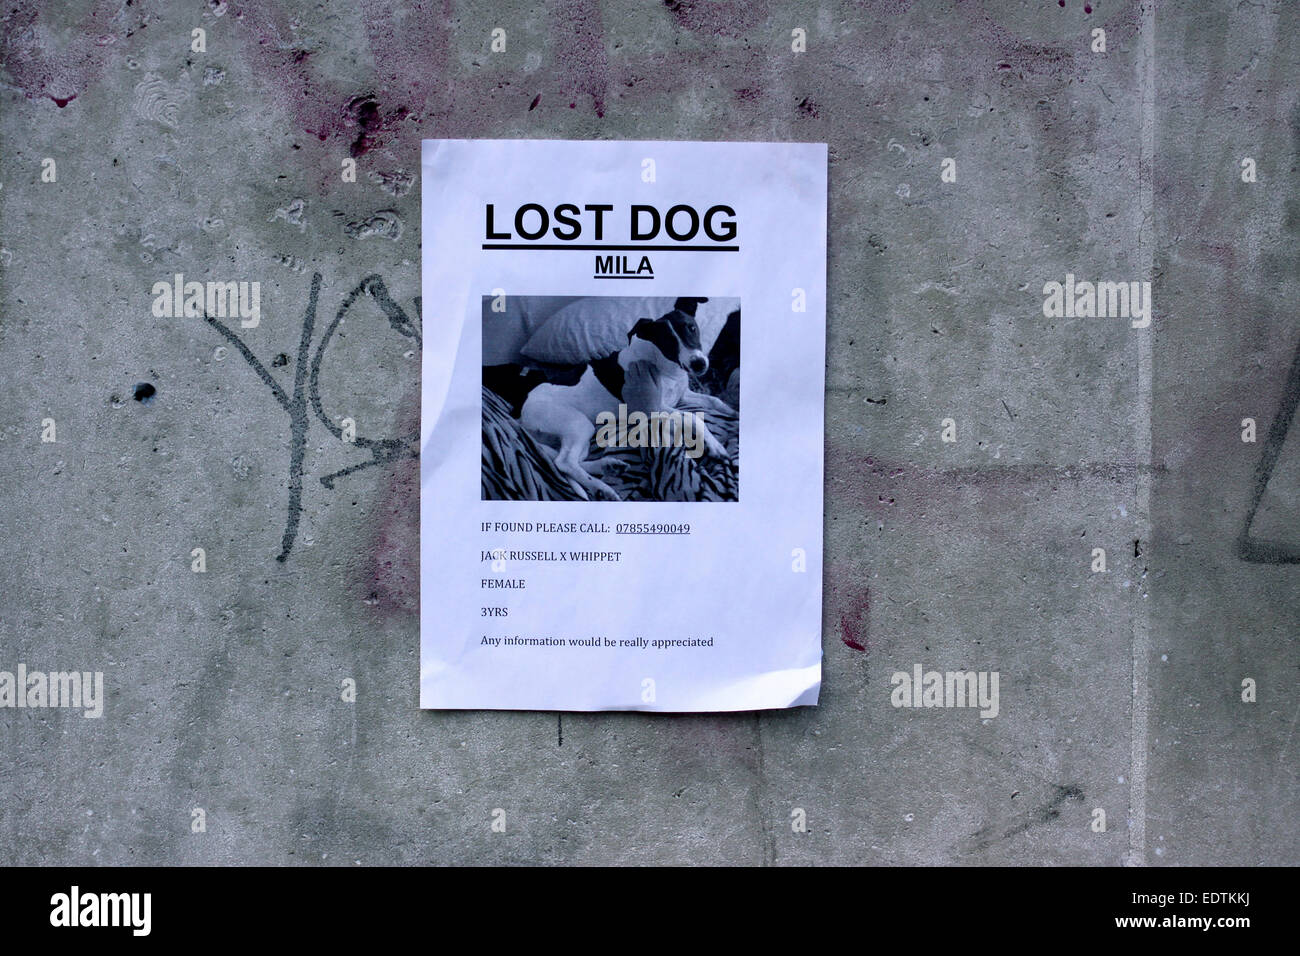 Poster for a missing dog in London - Stock Image